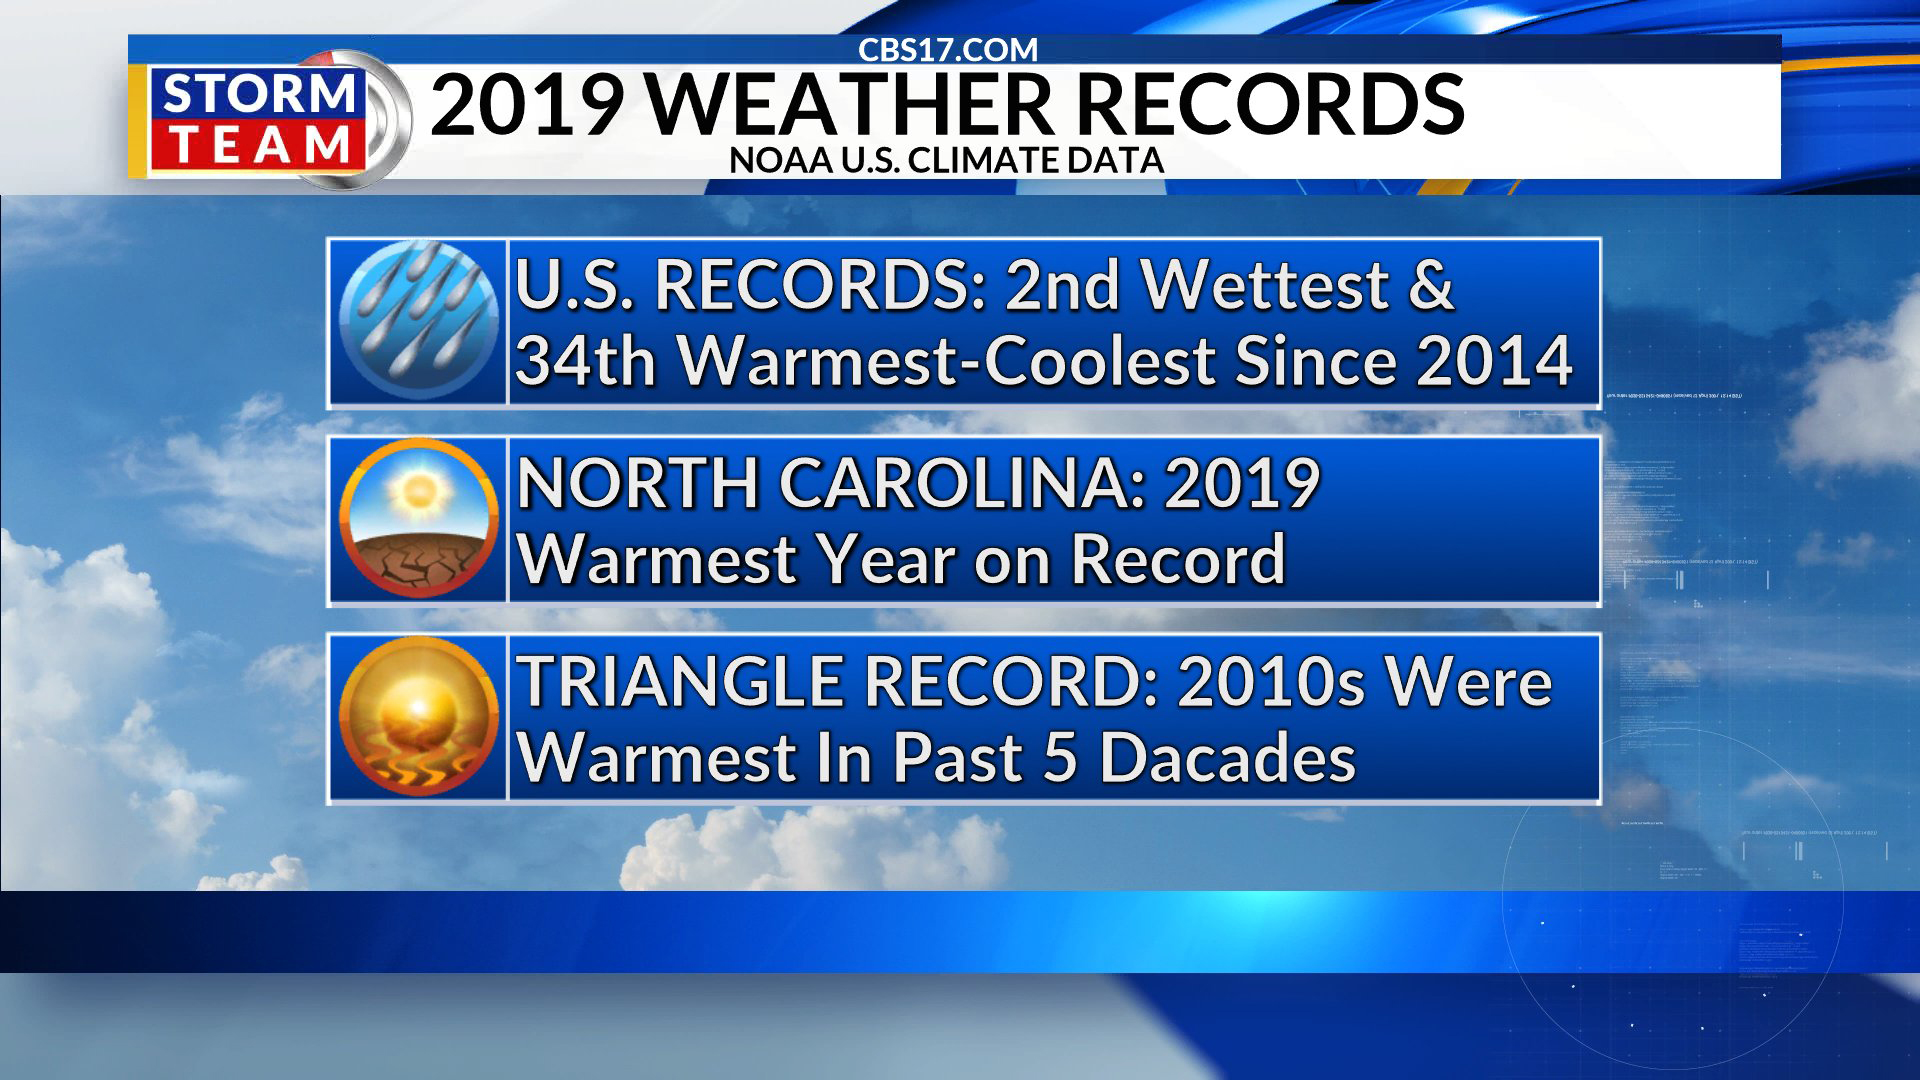 North Carolina experiences hottest year on record in 2019, NOAA reports